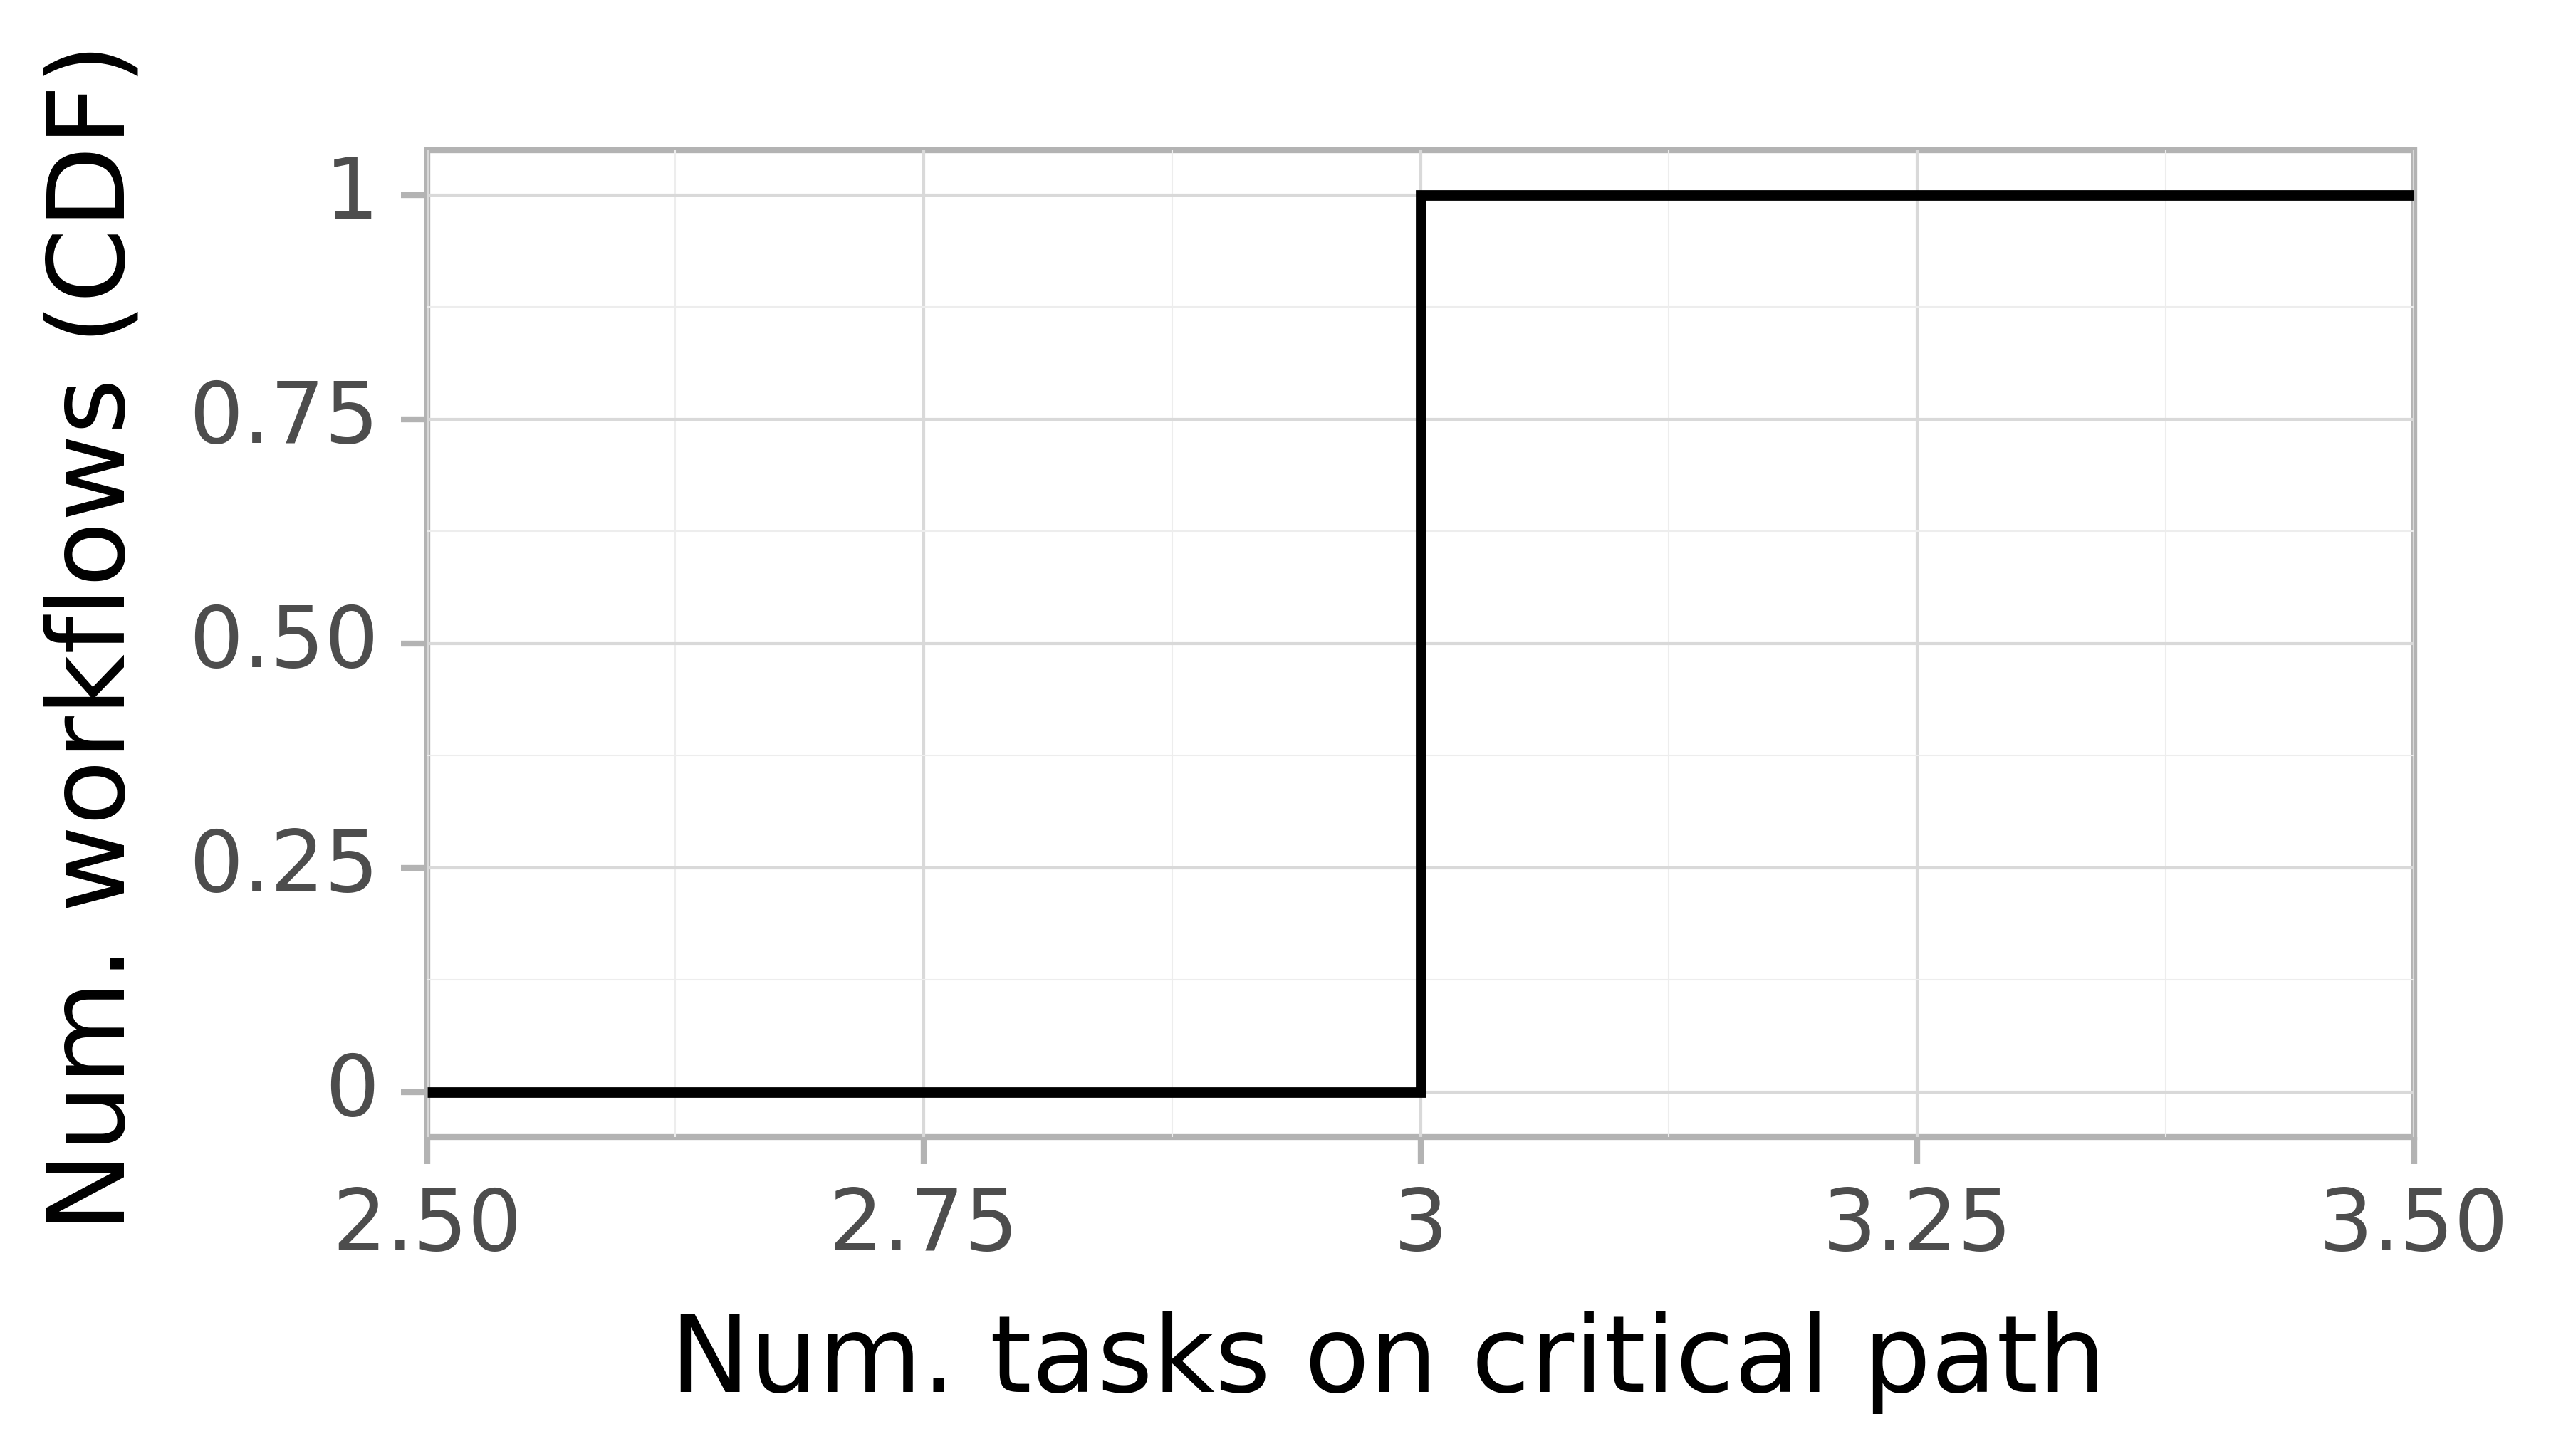 Job critical path task count graph for the askalon-new_ee61 trace.